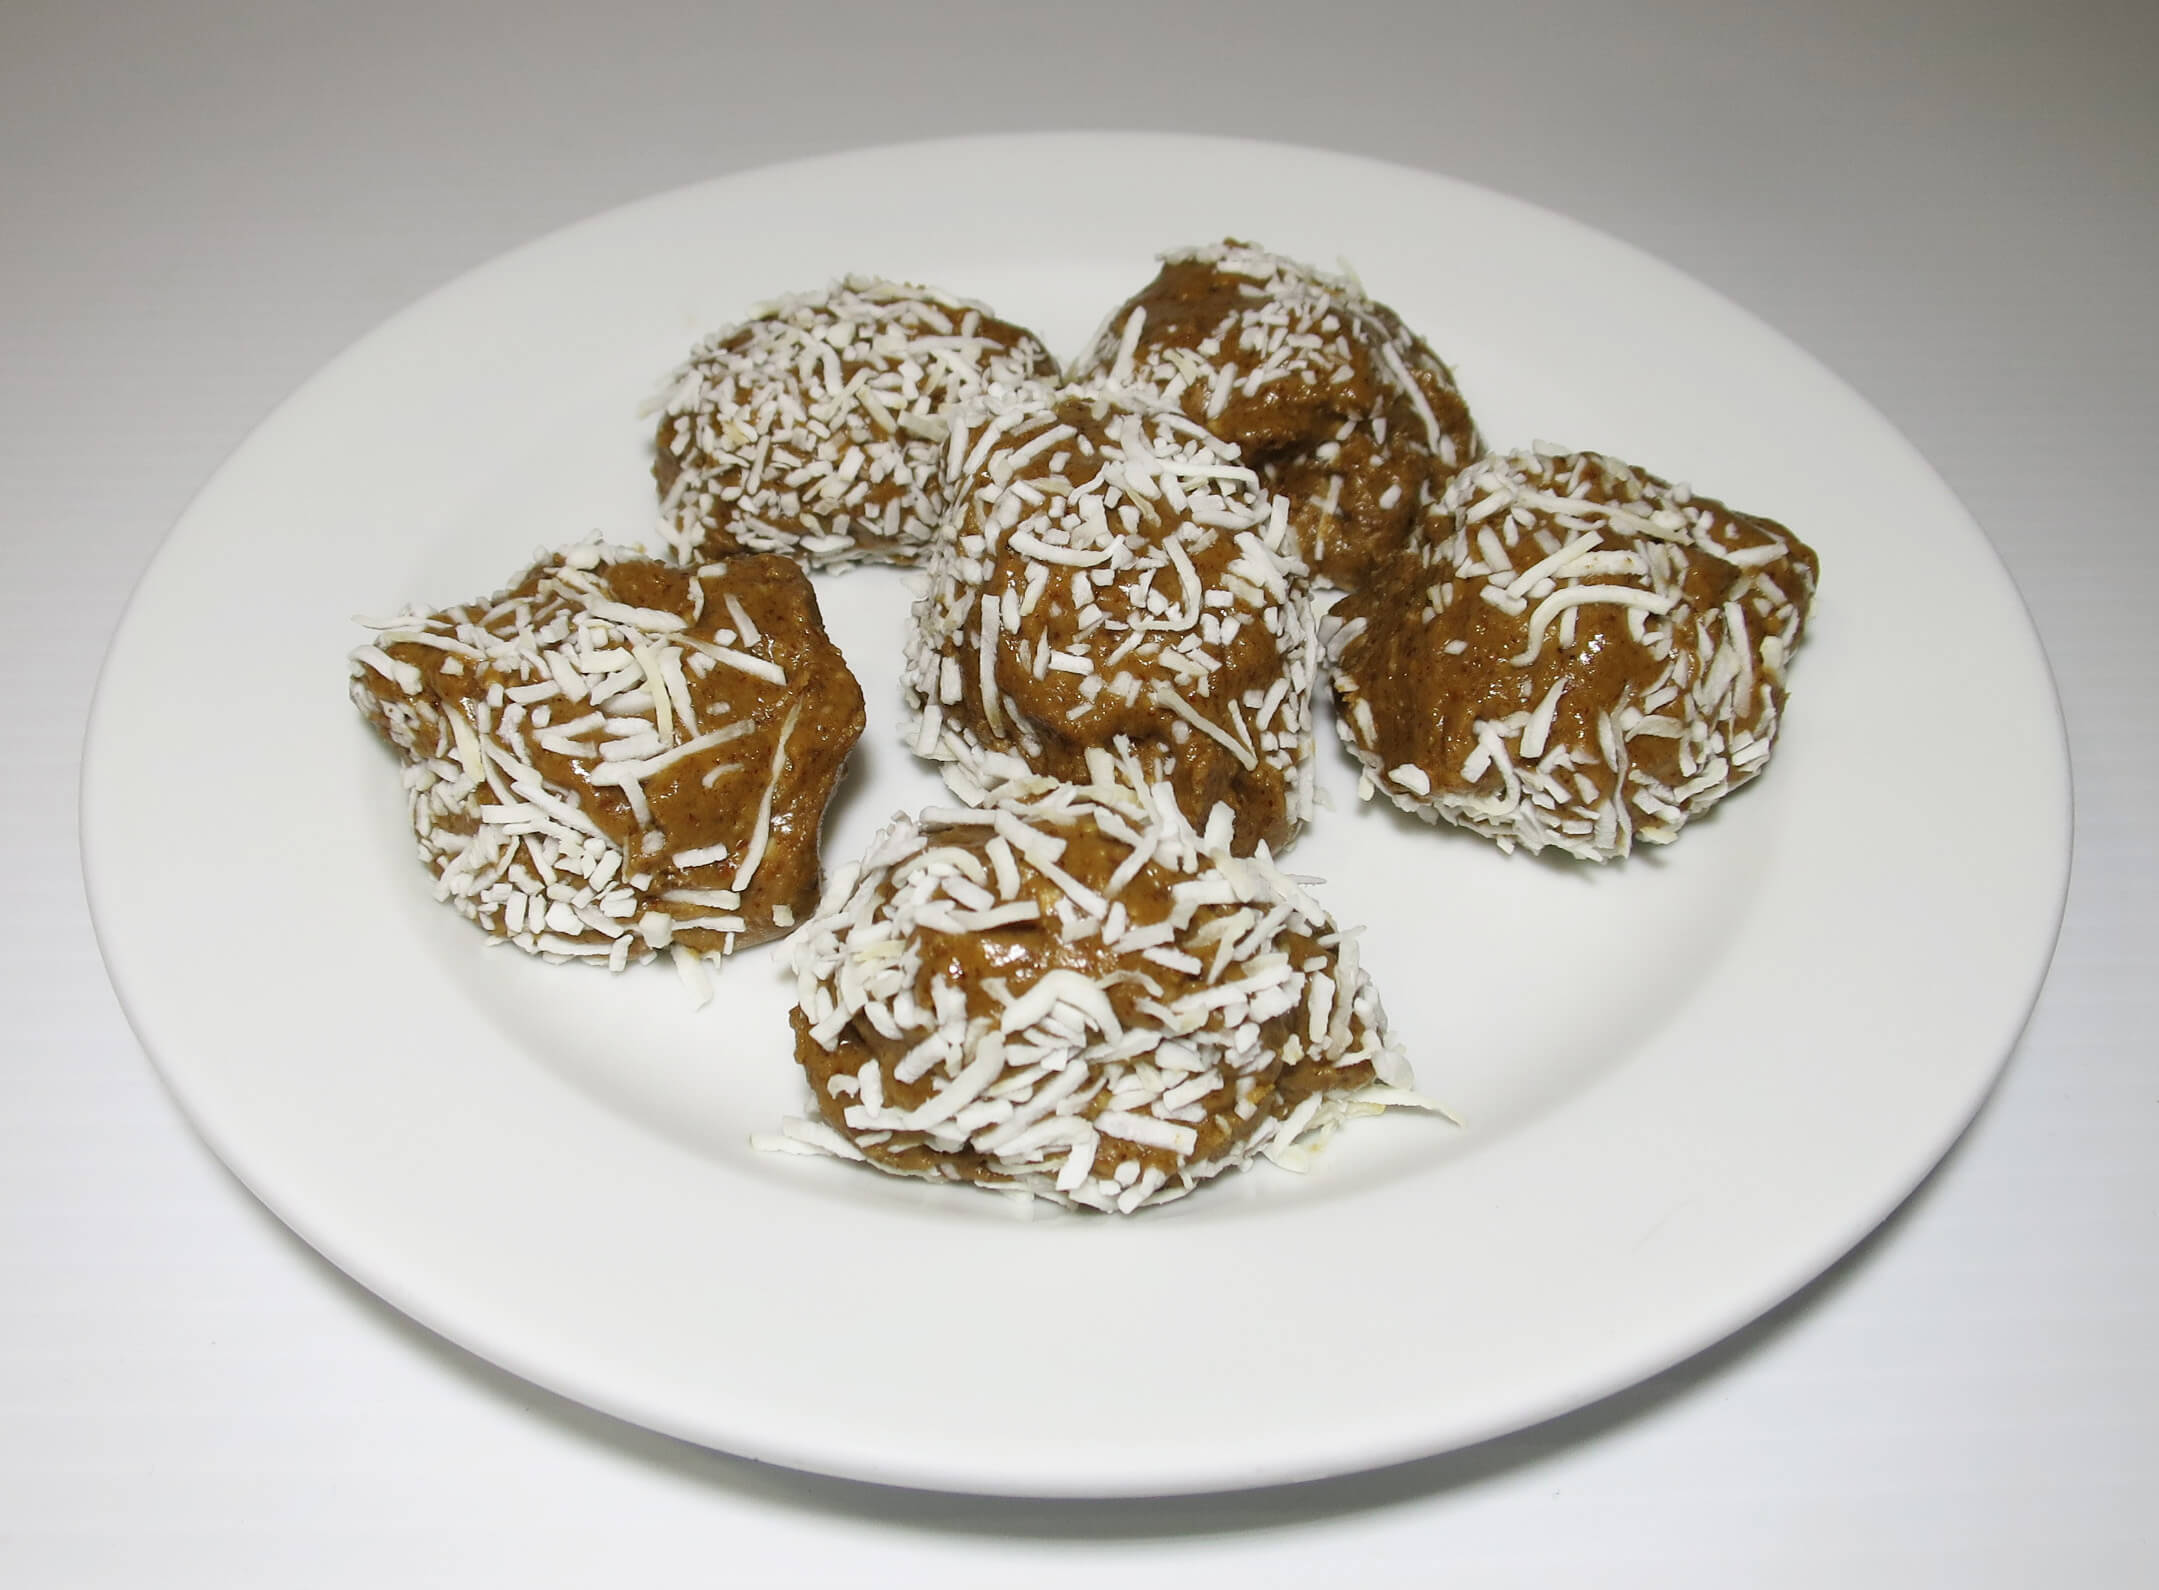 Almond Nut Freezer Balls